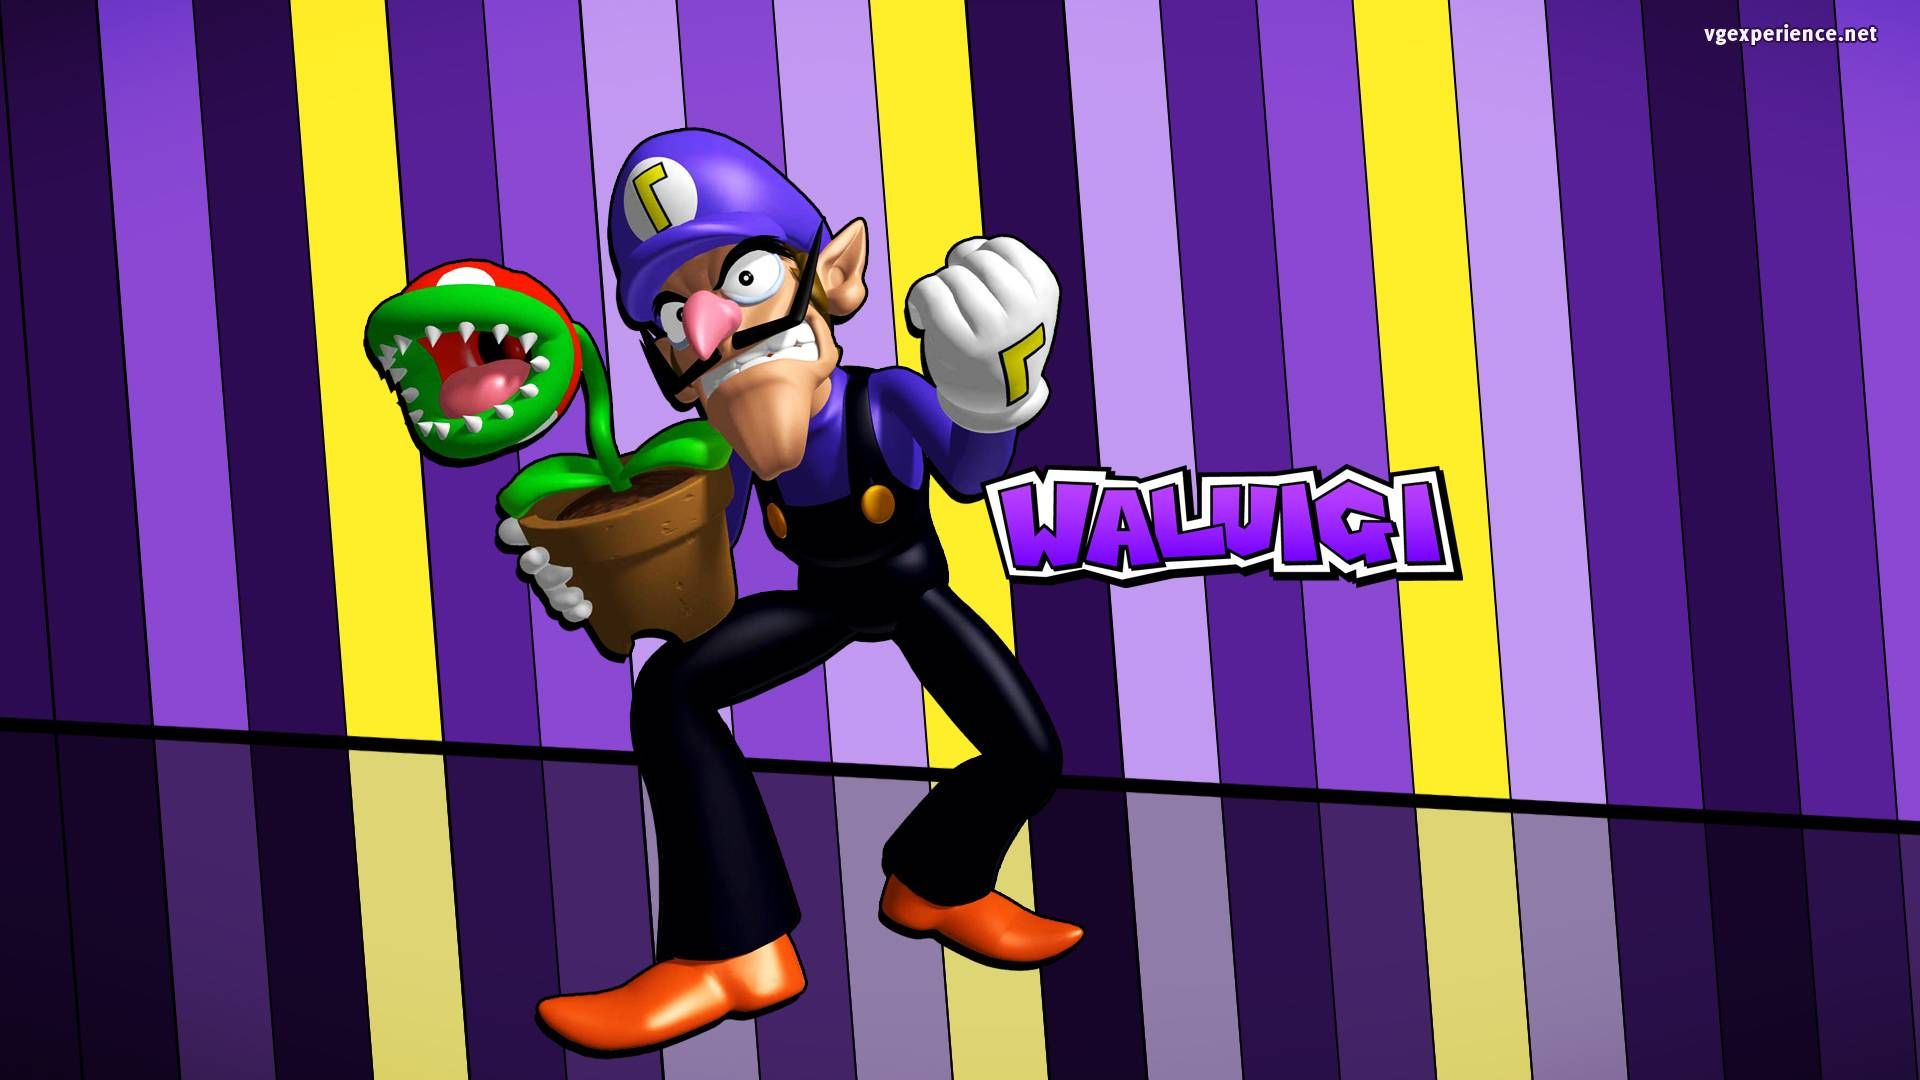 Waluigi Is Awesome Mario And Luigi Wallpaper Video Game